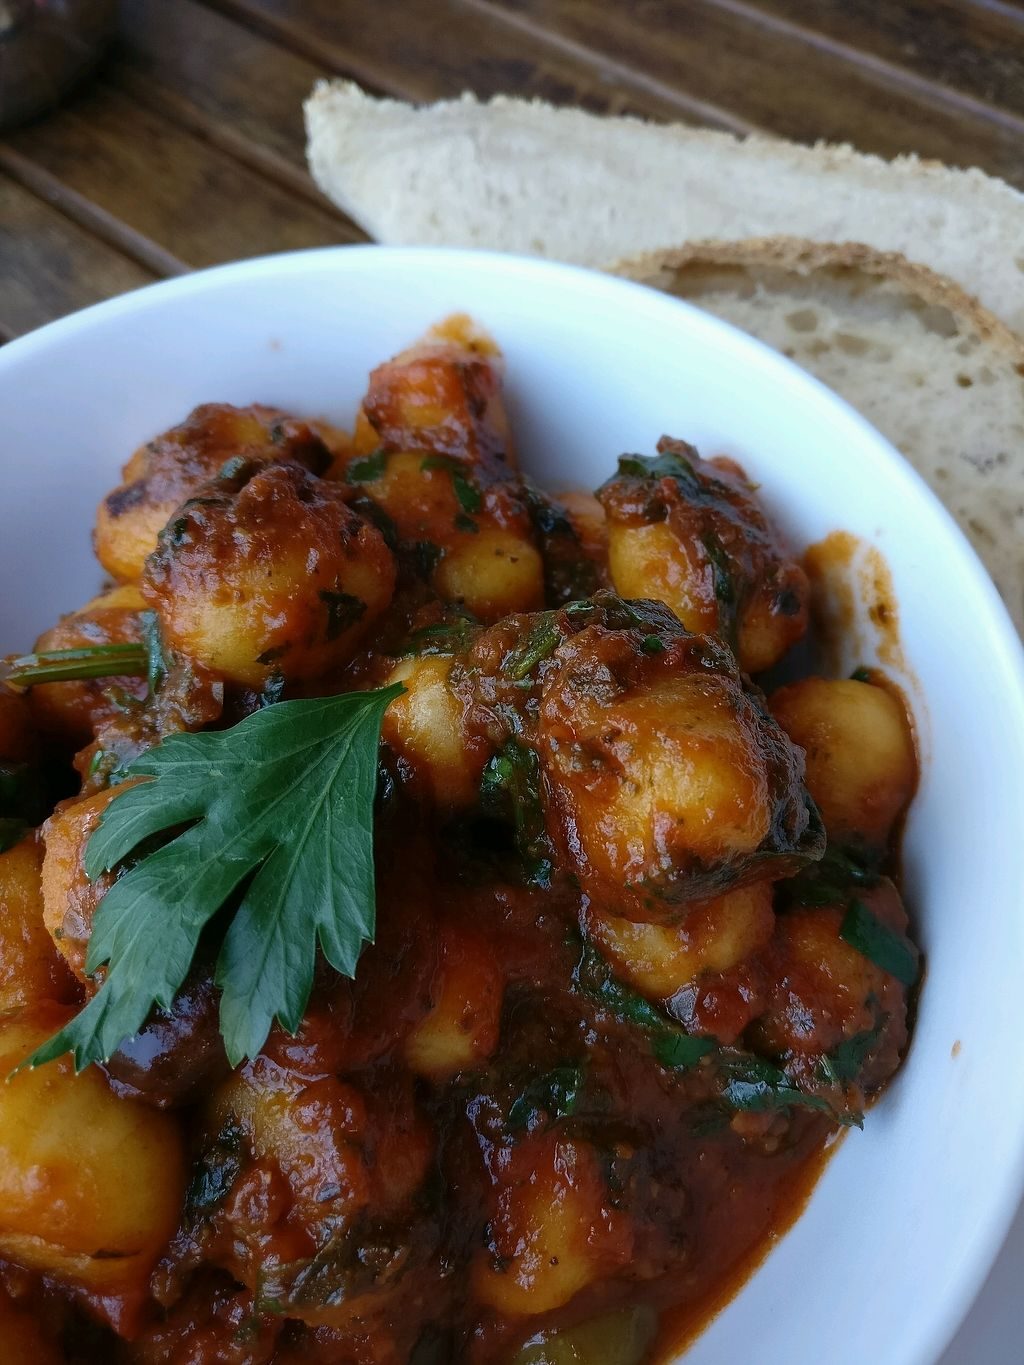 "Photo of Himalaya Bakery and Cafe  by <a href=""/members/profile/Aloo"">Aloo</a> <br/>vegan gnocchi  <br/> March 10, 2018  - <a href='/contact/abuse/image/12852/368739'>Report</a>"